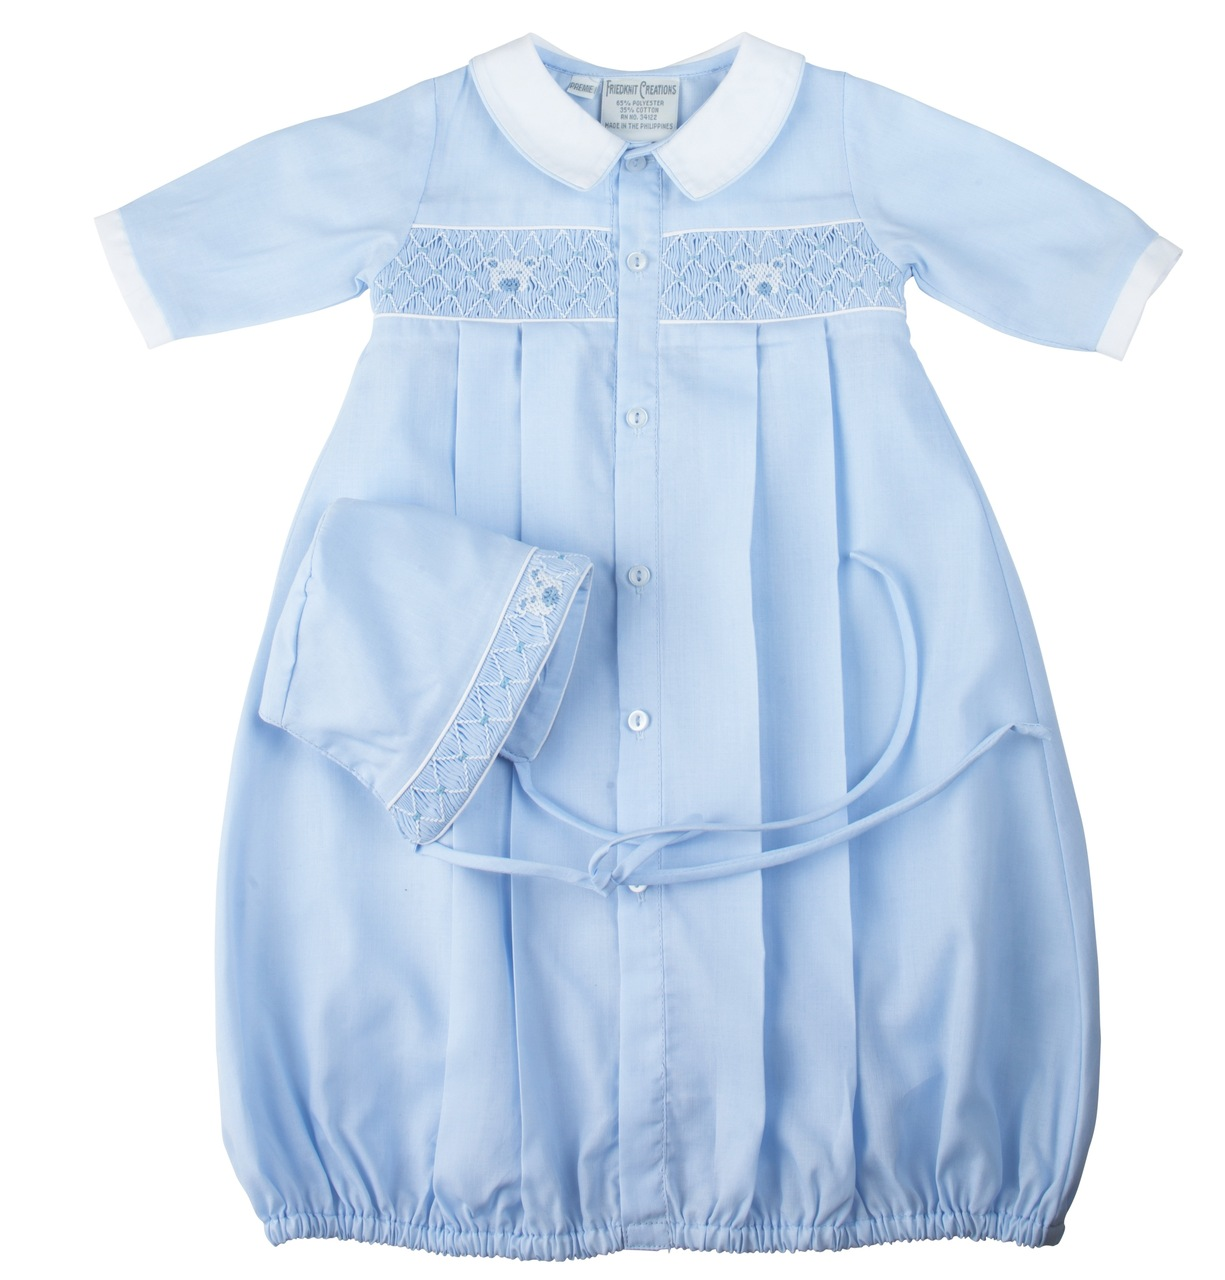 e613585dd66 Preemie Teddy Smocked Take Me Home Gown with Hat